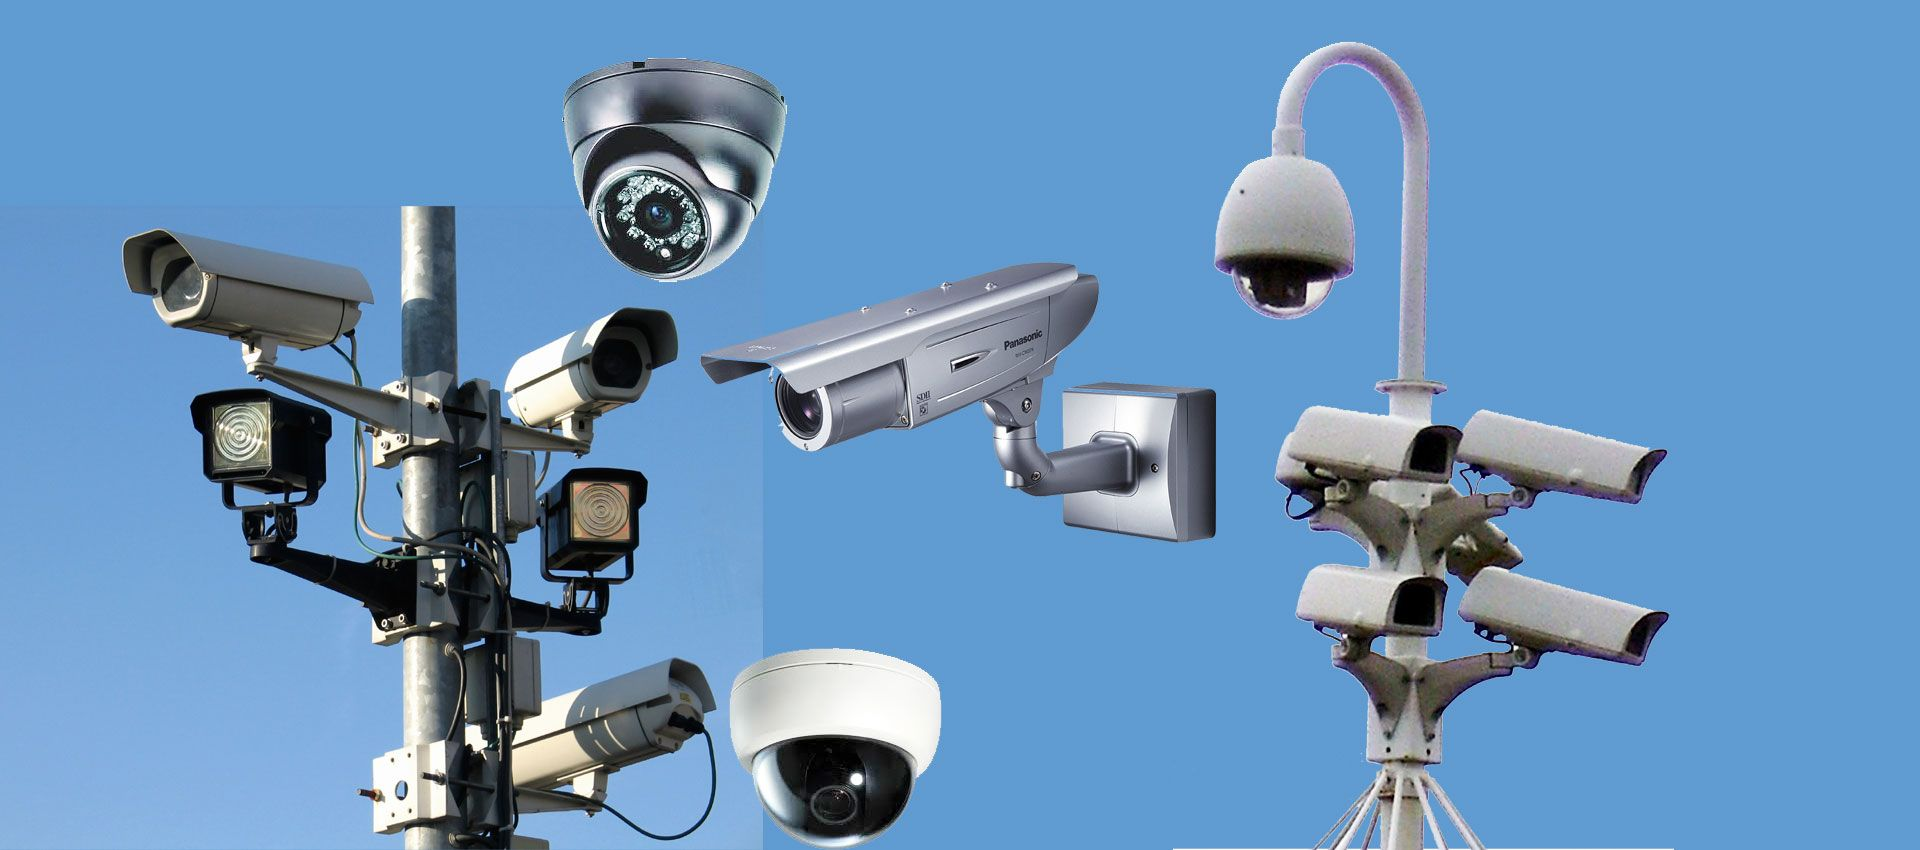 Best Home Surveillance Systems 2020 CCTV Market Industry Outlook Report 2020 | Electronics Security